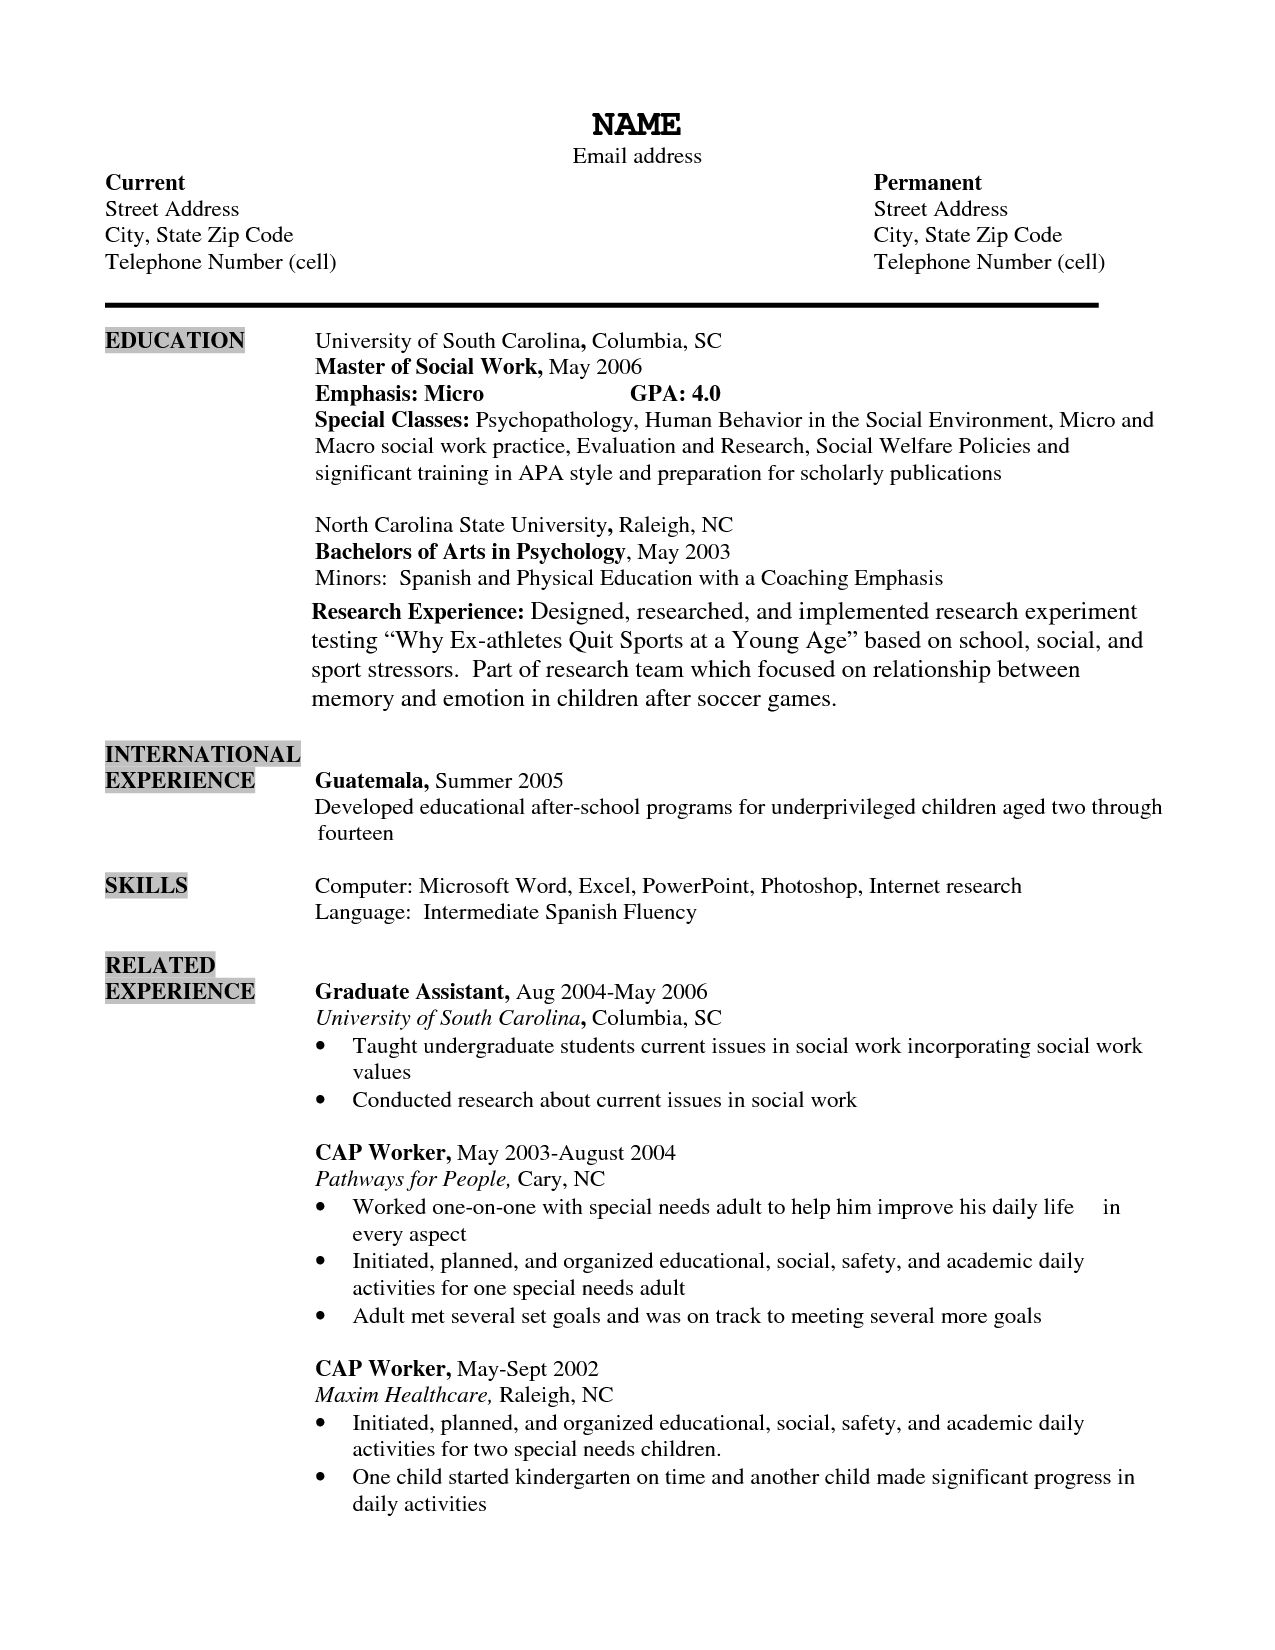 international psychologist sample resume travel account manager ...